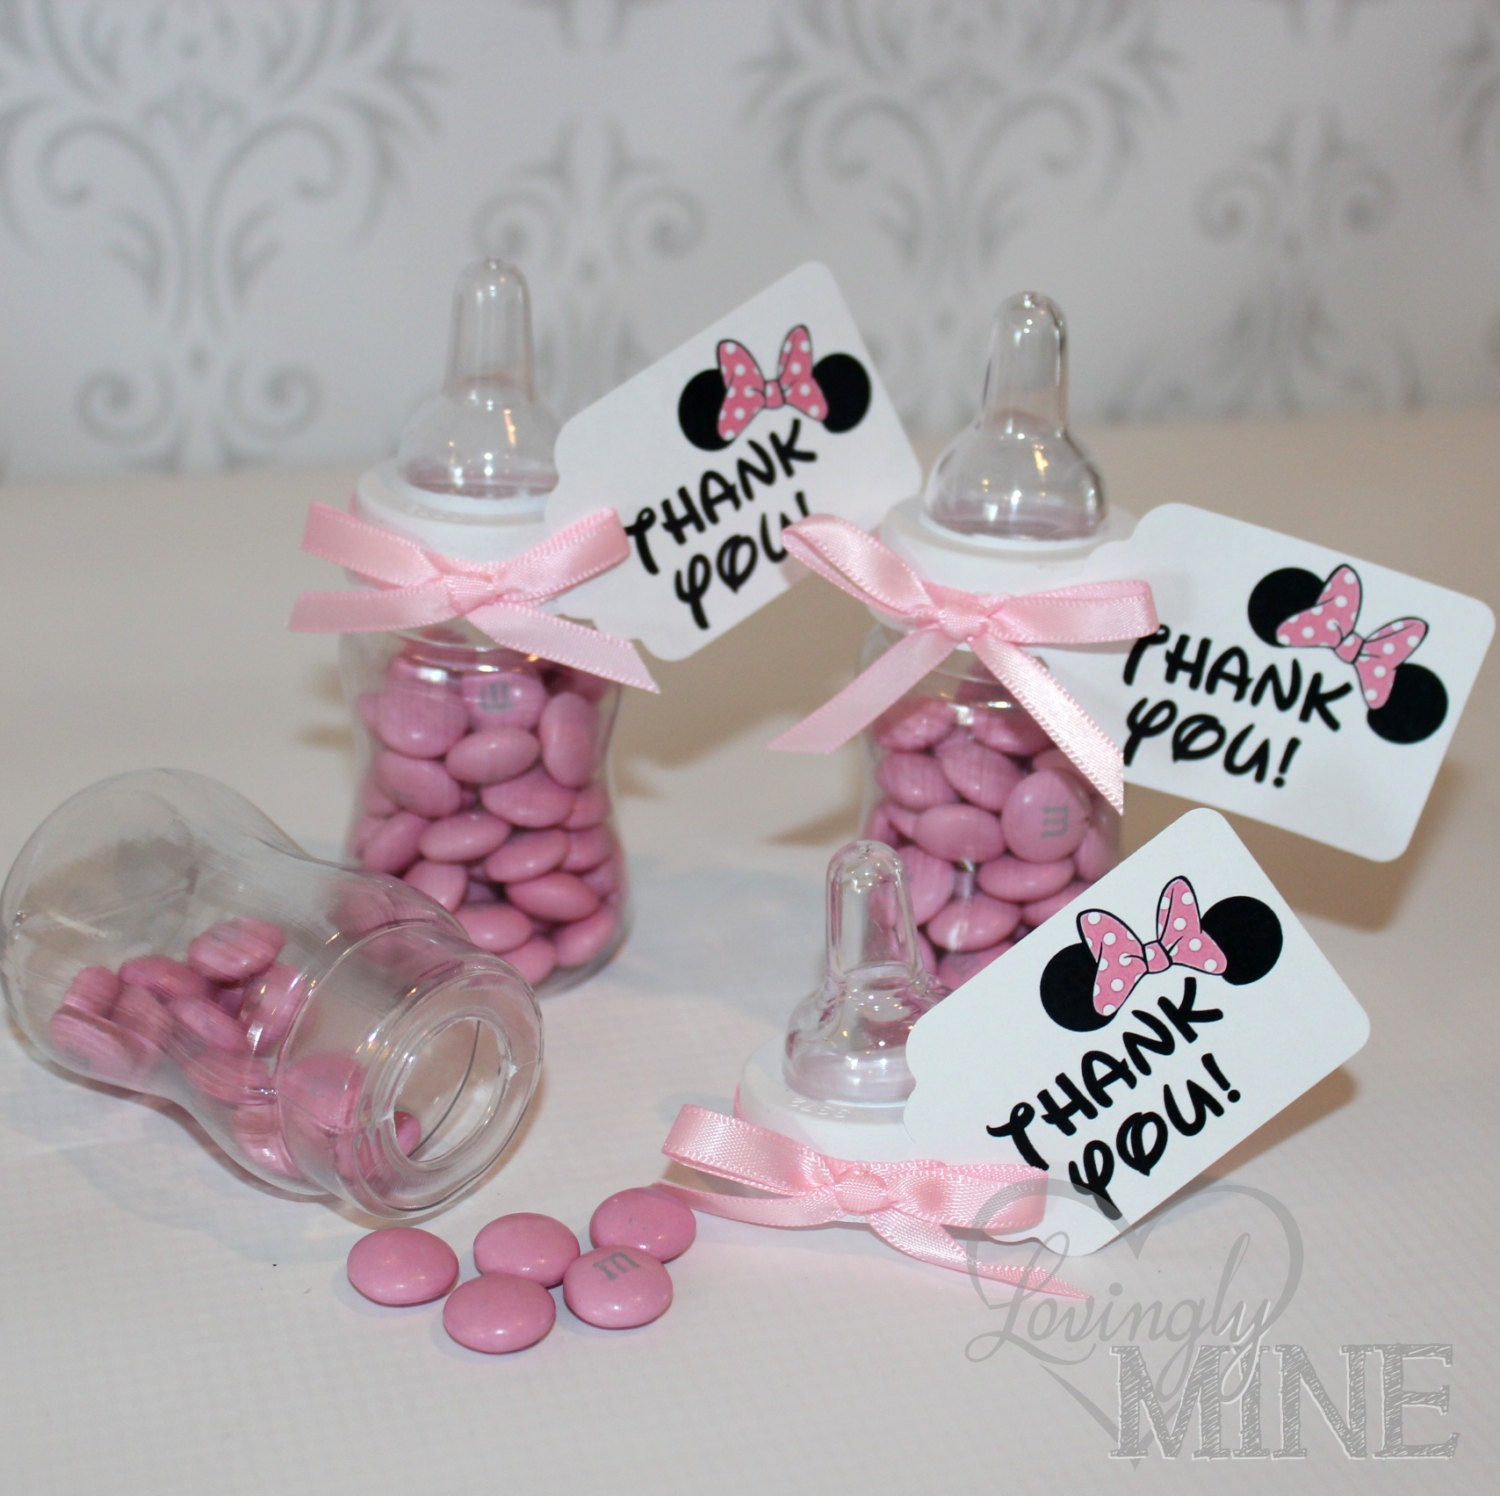 Minnie Mouse Baby Shower Party Favors: Minnie Mouse Inspired Baby Shower Favors Plastic By